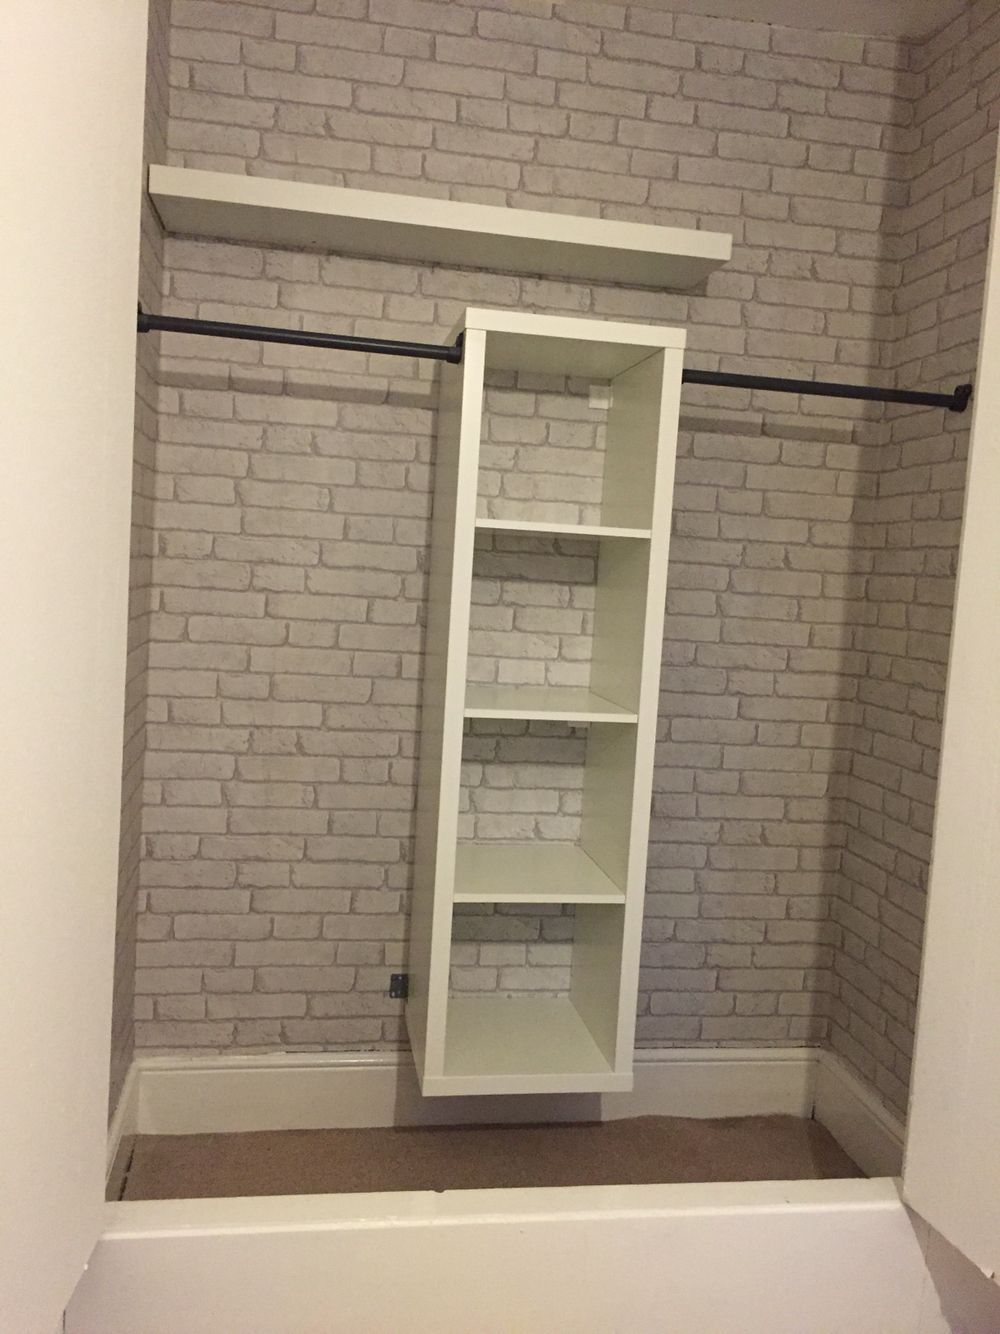 Kallax Kleiderschrank Ikea Kallax Hack Built In Wardrobe And Brick Wallpaper Flur